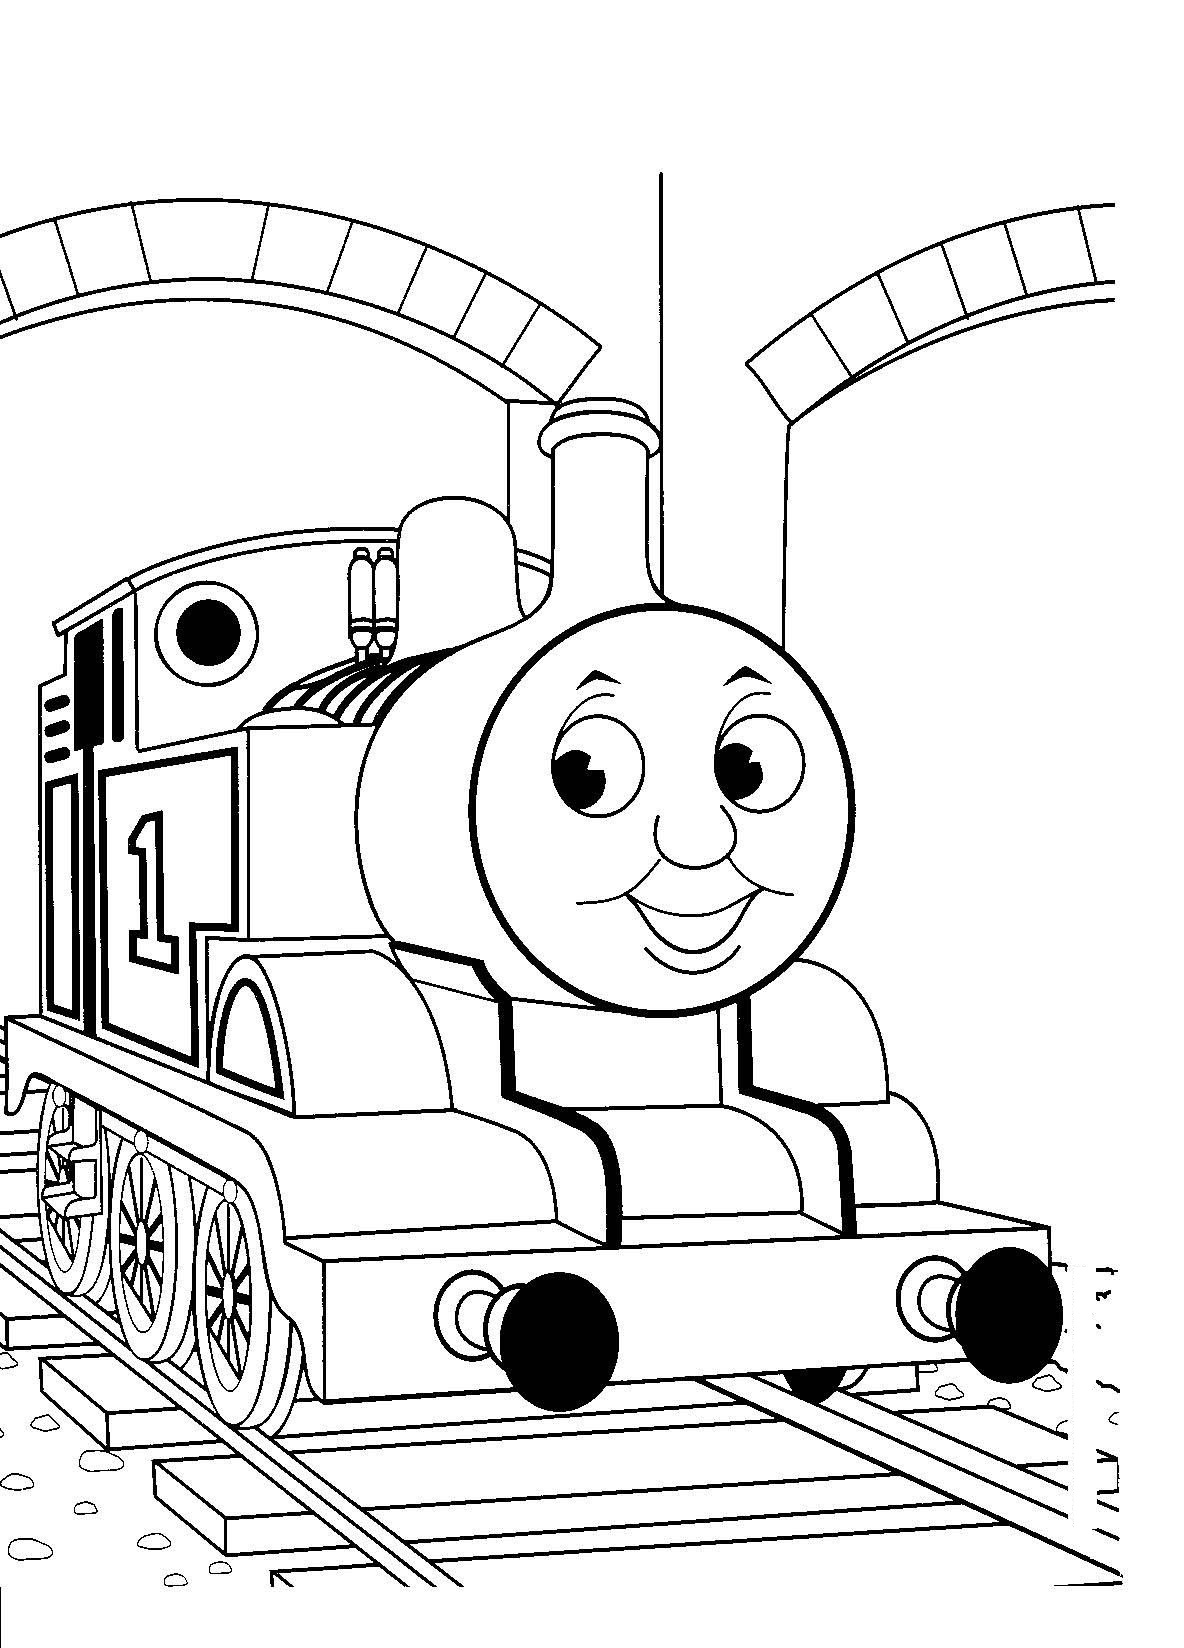 Inventive image with regard to printable train coloring page